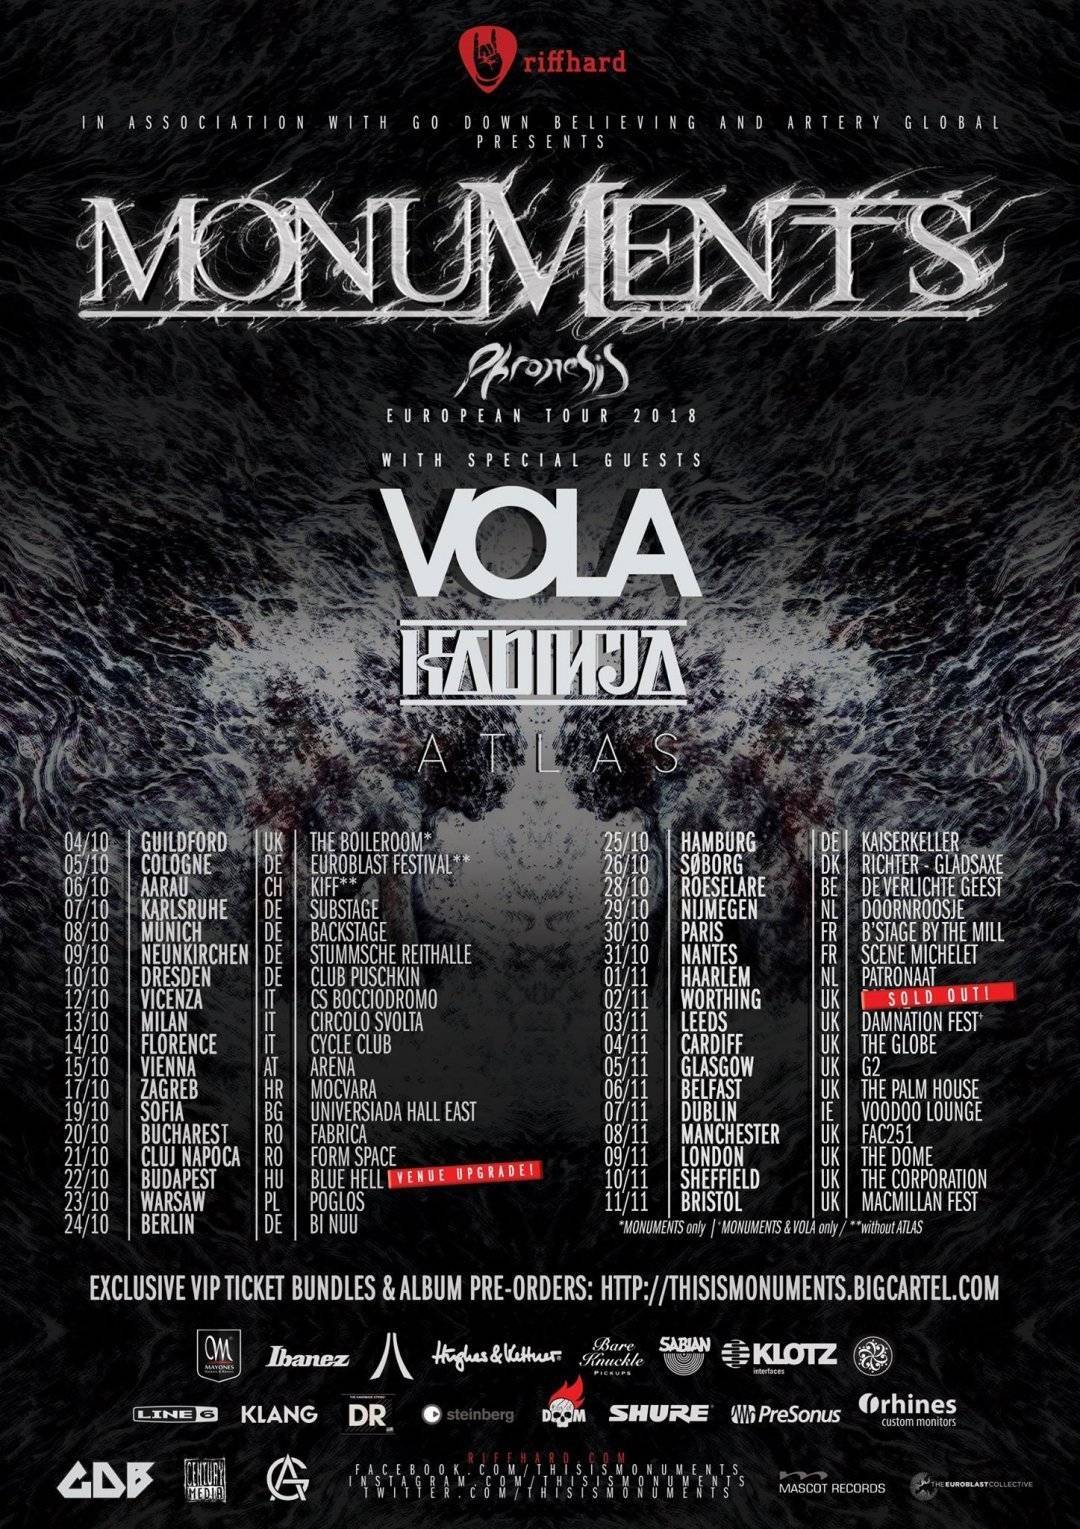 Monuments, Vola, Kadinja & Atlas in Munich, October 8 2018